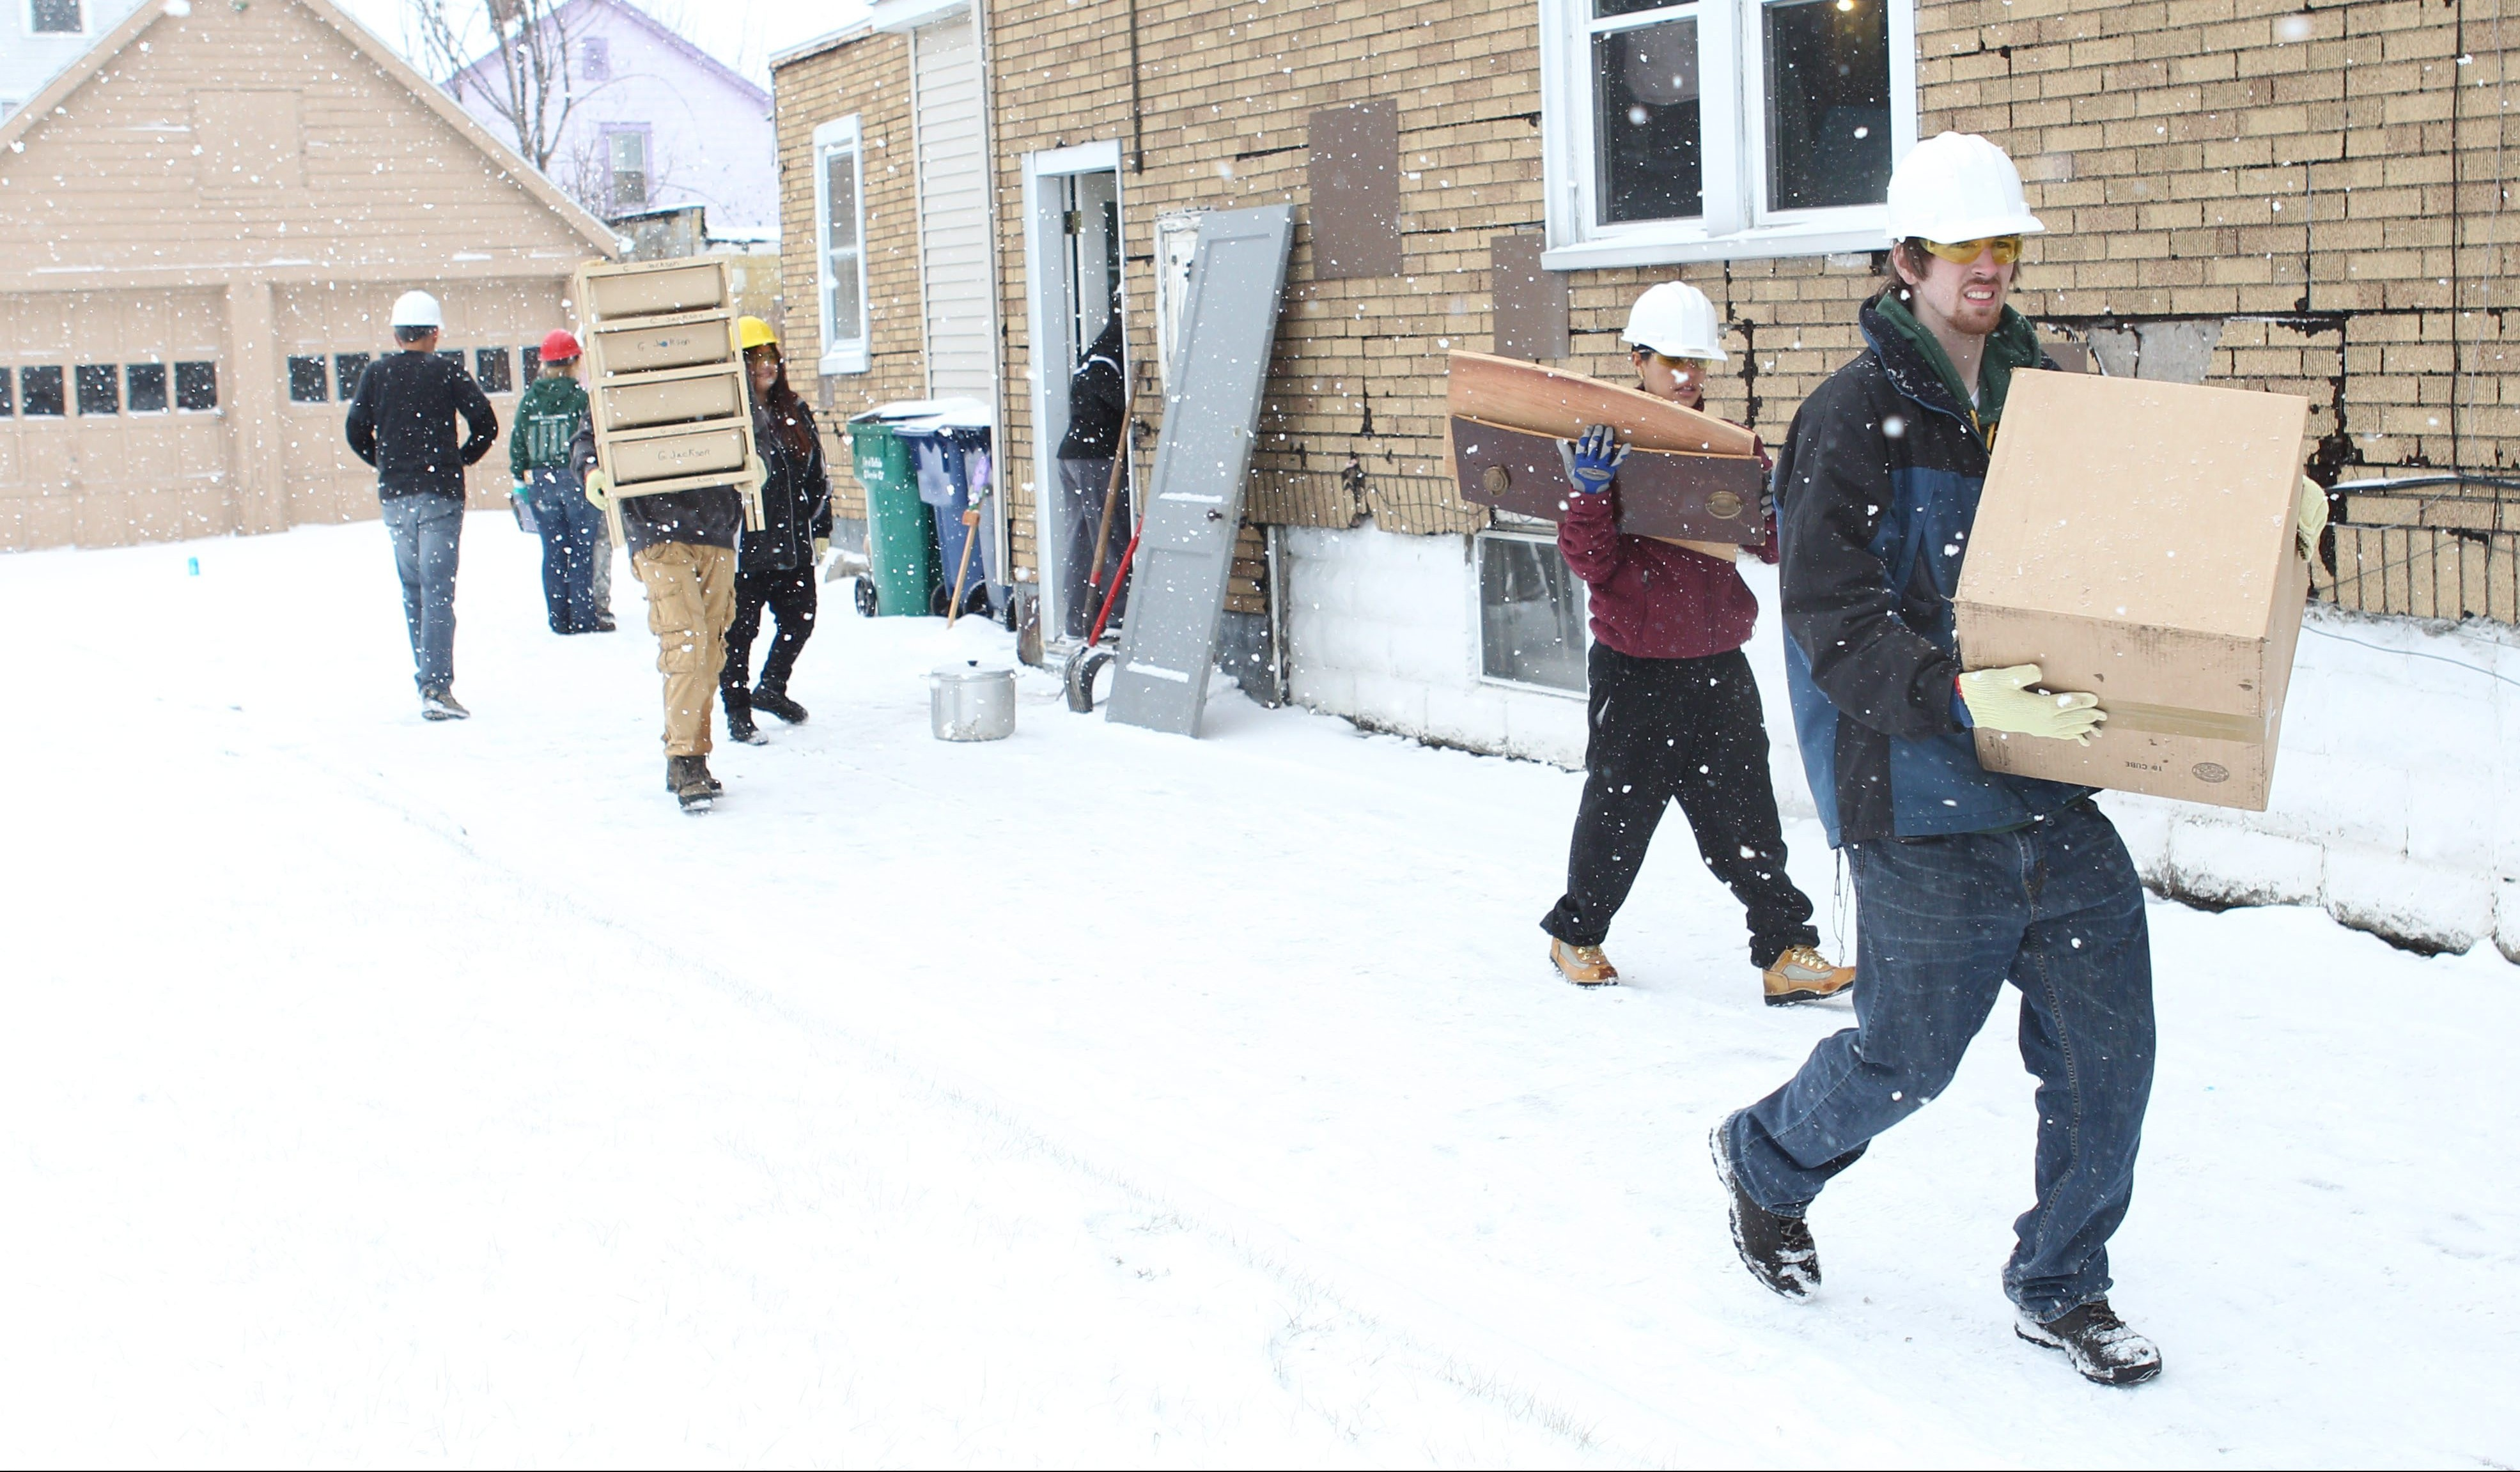 When Habitat for Humanity volunteers clear out homes donated to the charity -- as at this Wilkes Street residence in 2014 -- sometimes they find unusual things tucked in the house's nooks and crannies. (Sharon Cantillon/News file photo)